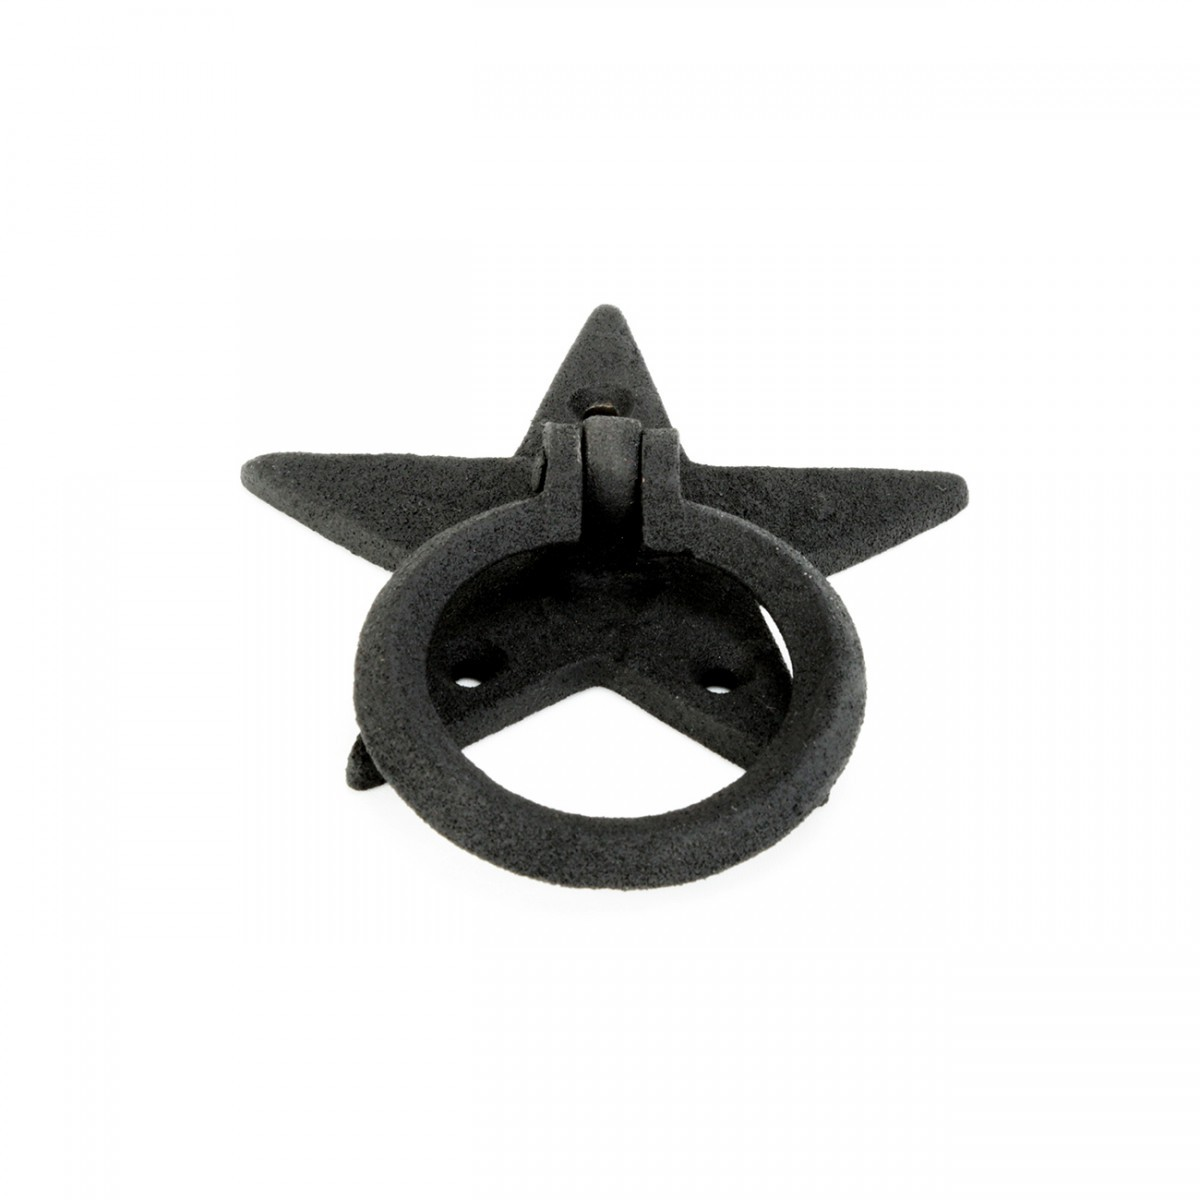 Cabinet Drawer Ring Pull Black Iron Star Design Pack of 2 Black Iron Star Cabinet Drawer Ring Pull